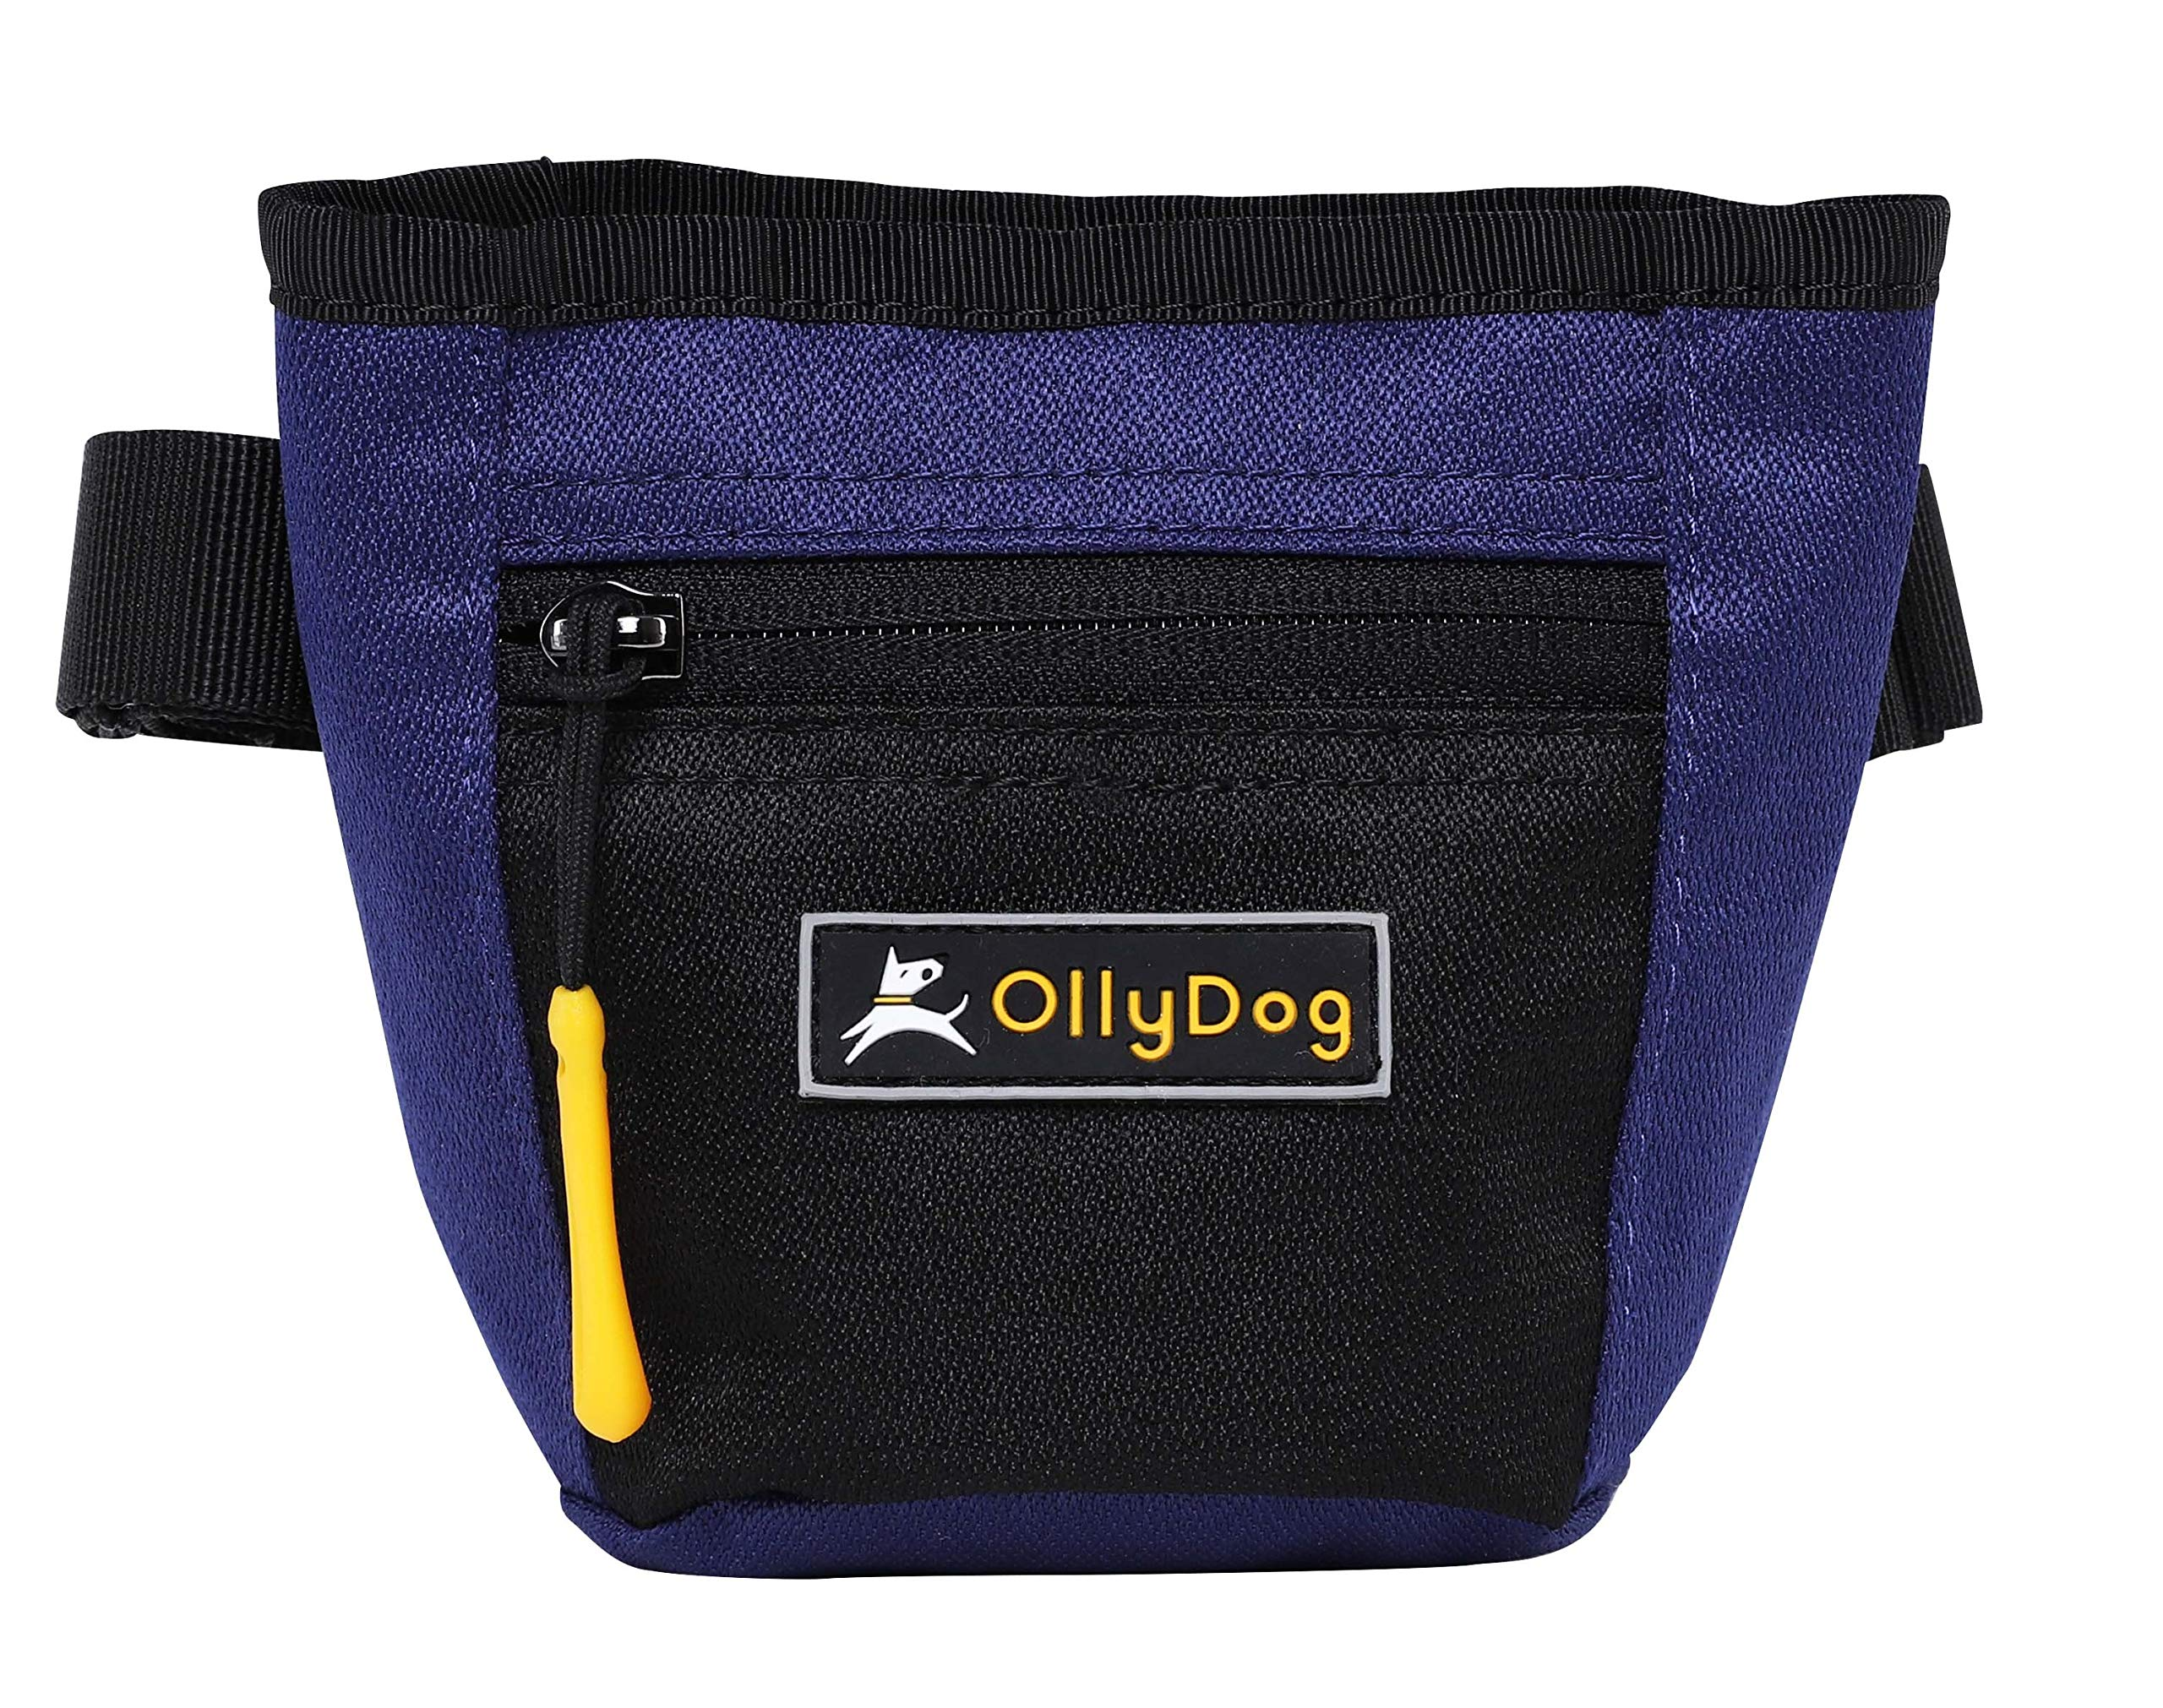 OllyDog Goodie Dog Treat Bag with Belt Clip